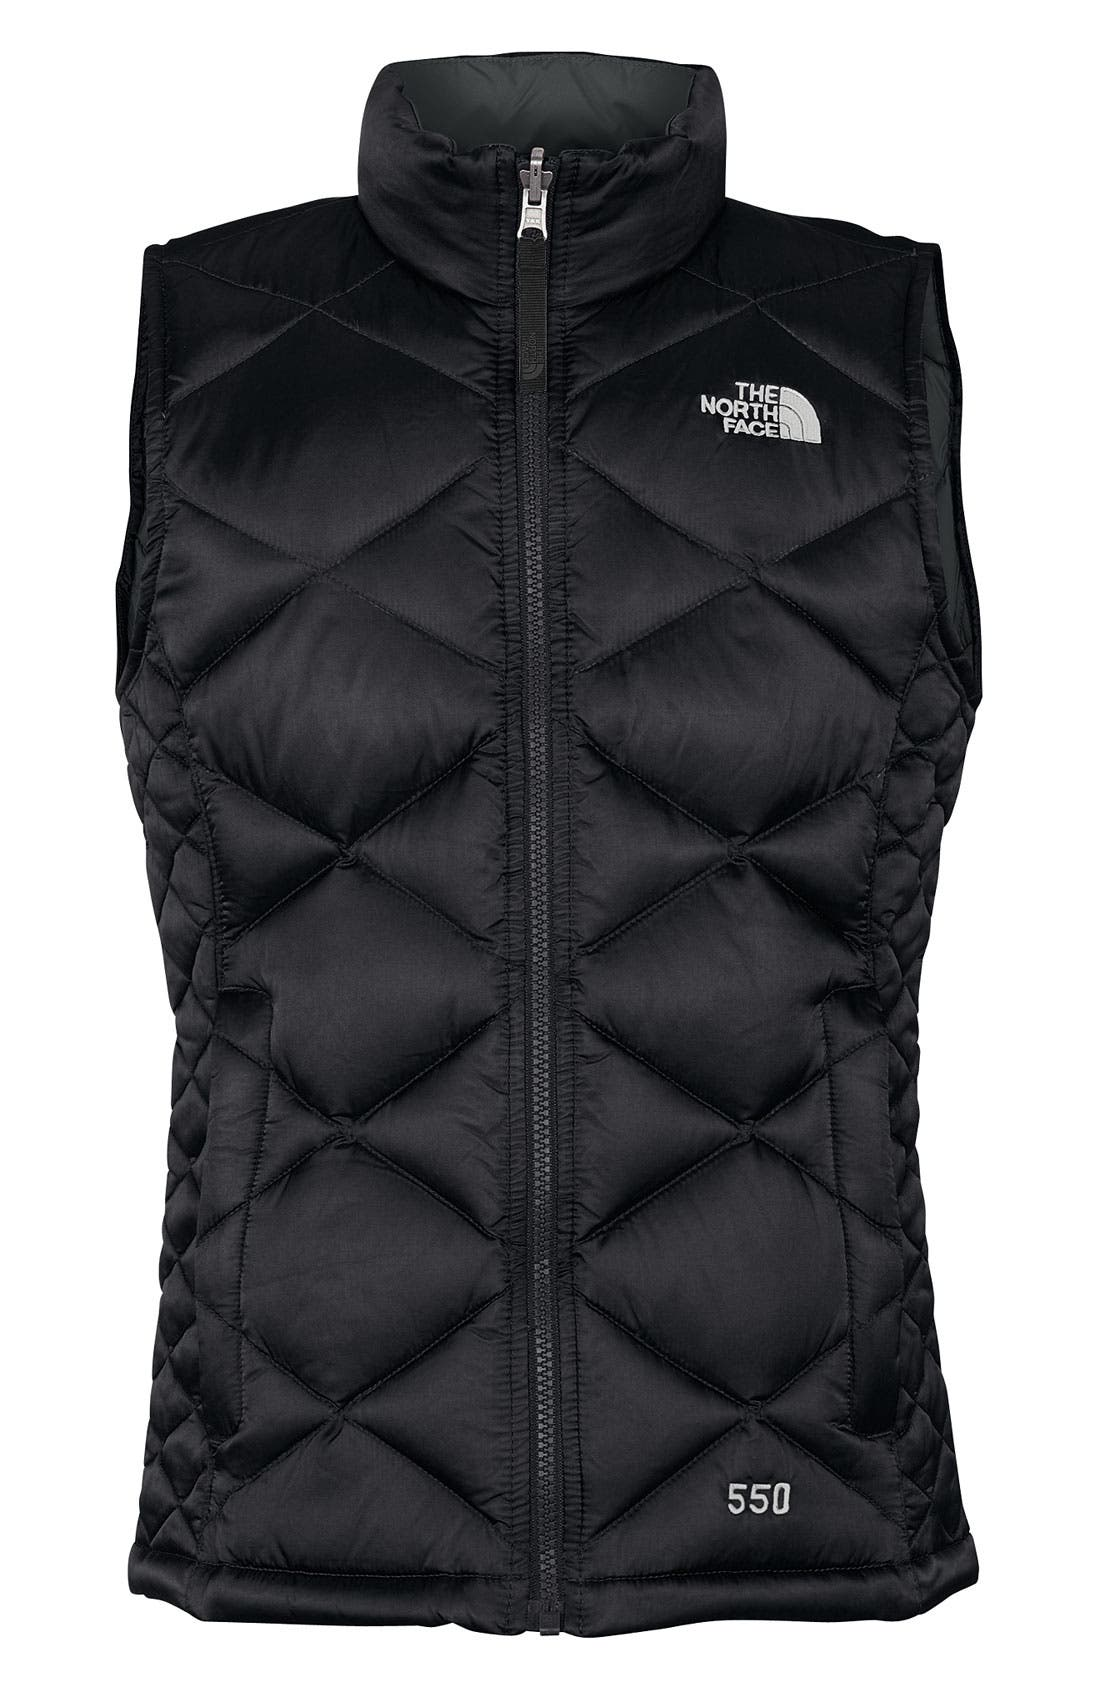 Alternate Image 1 Selected - The North Face Vest (Big Girls)